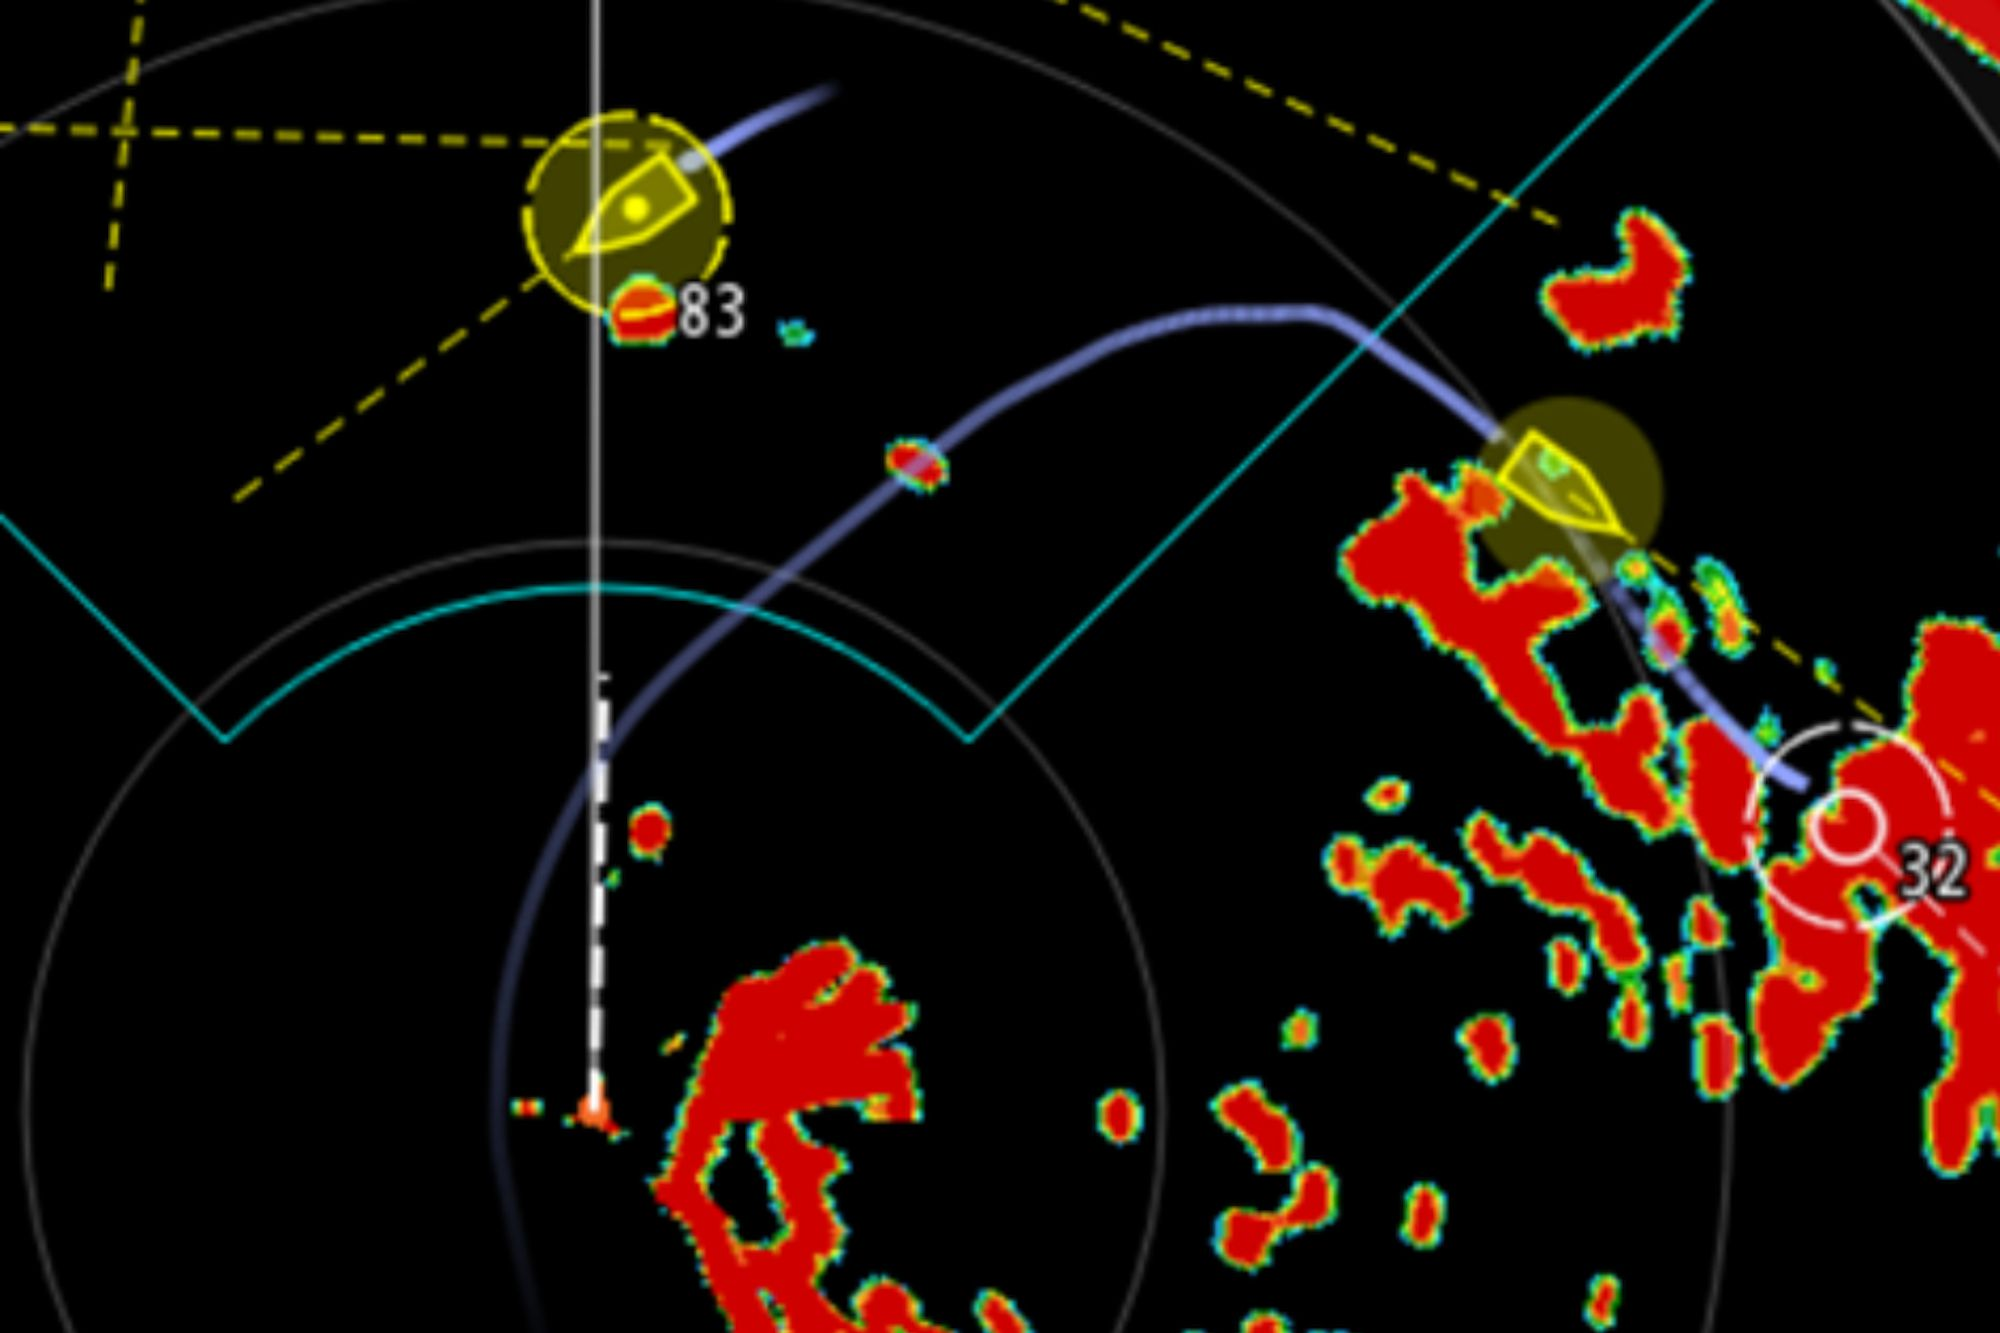 """The image shows """"radar and AIS targets displaying a graduated trail showing the vessel's past position history for greater situational awareness."""""""